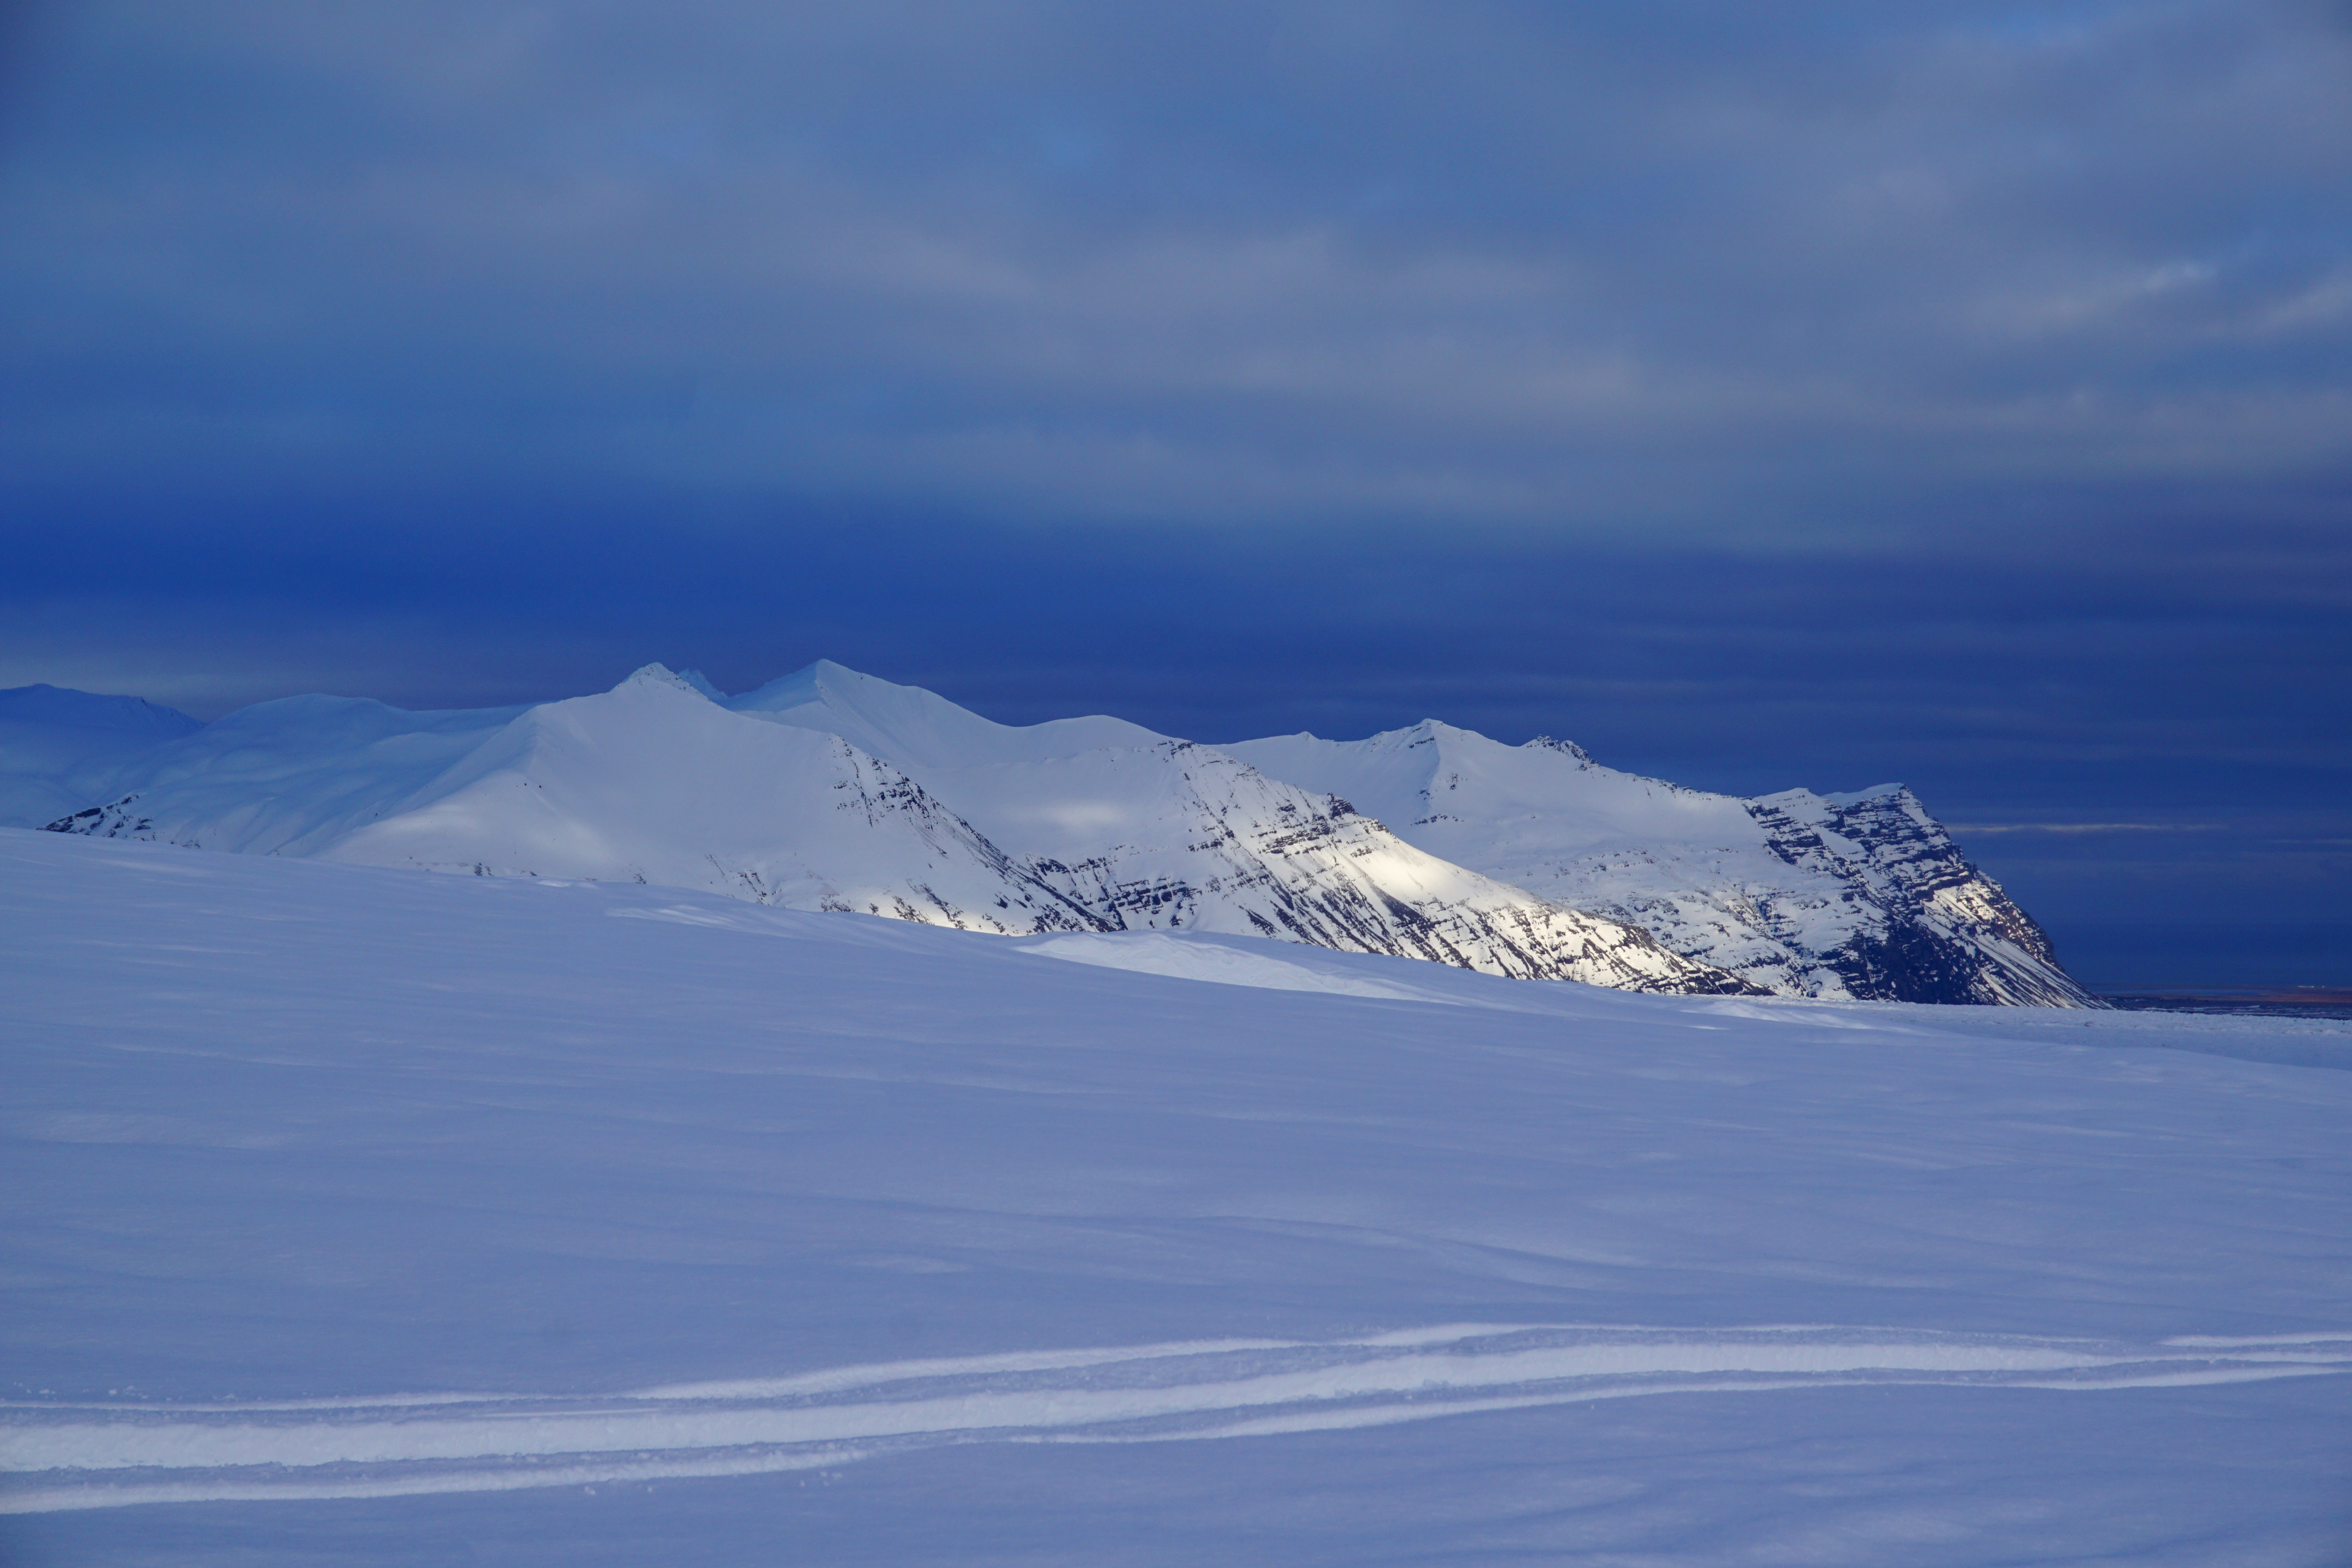 View from the top of the Vatnajökull Glacier while ice caving in Iceland